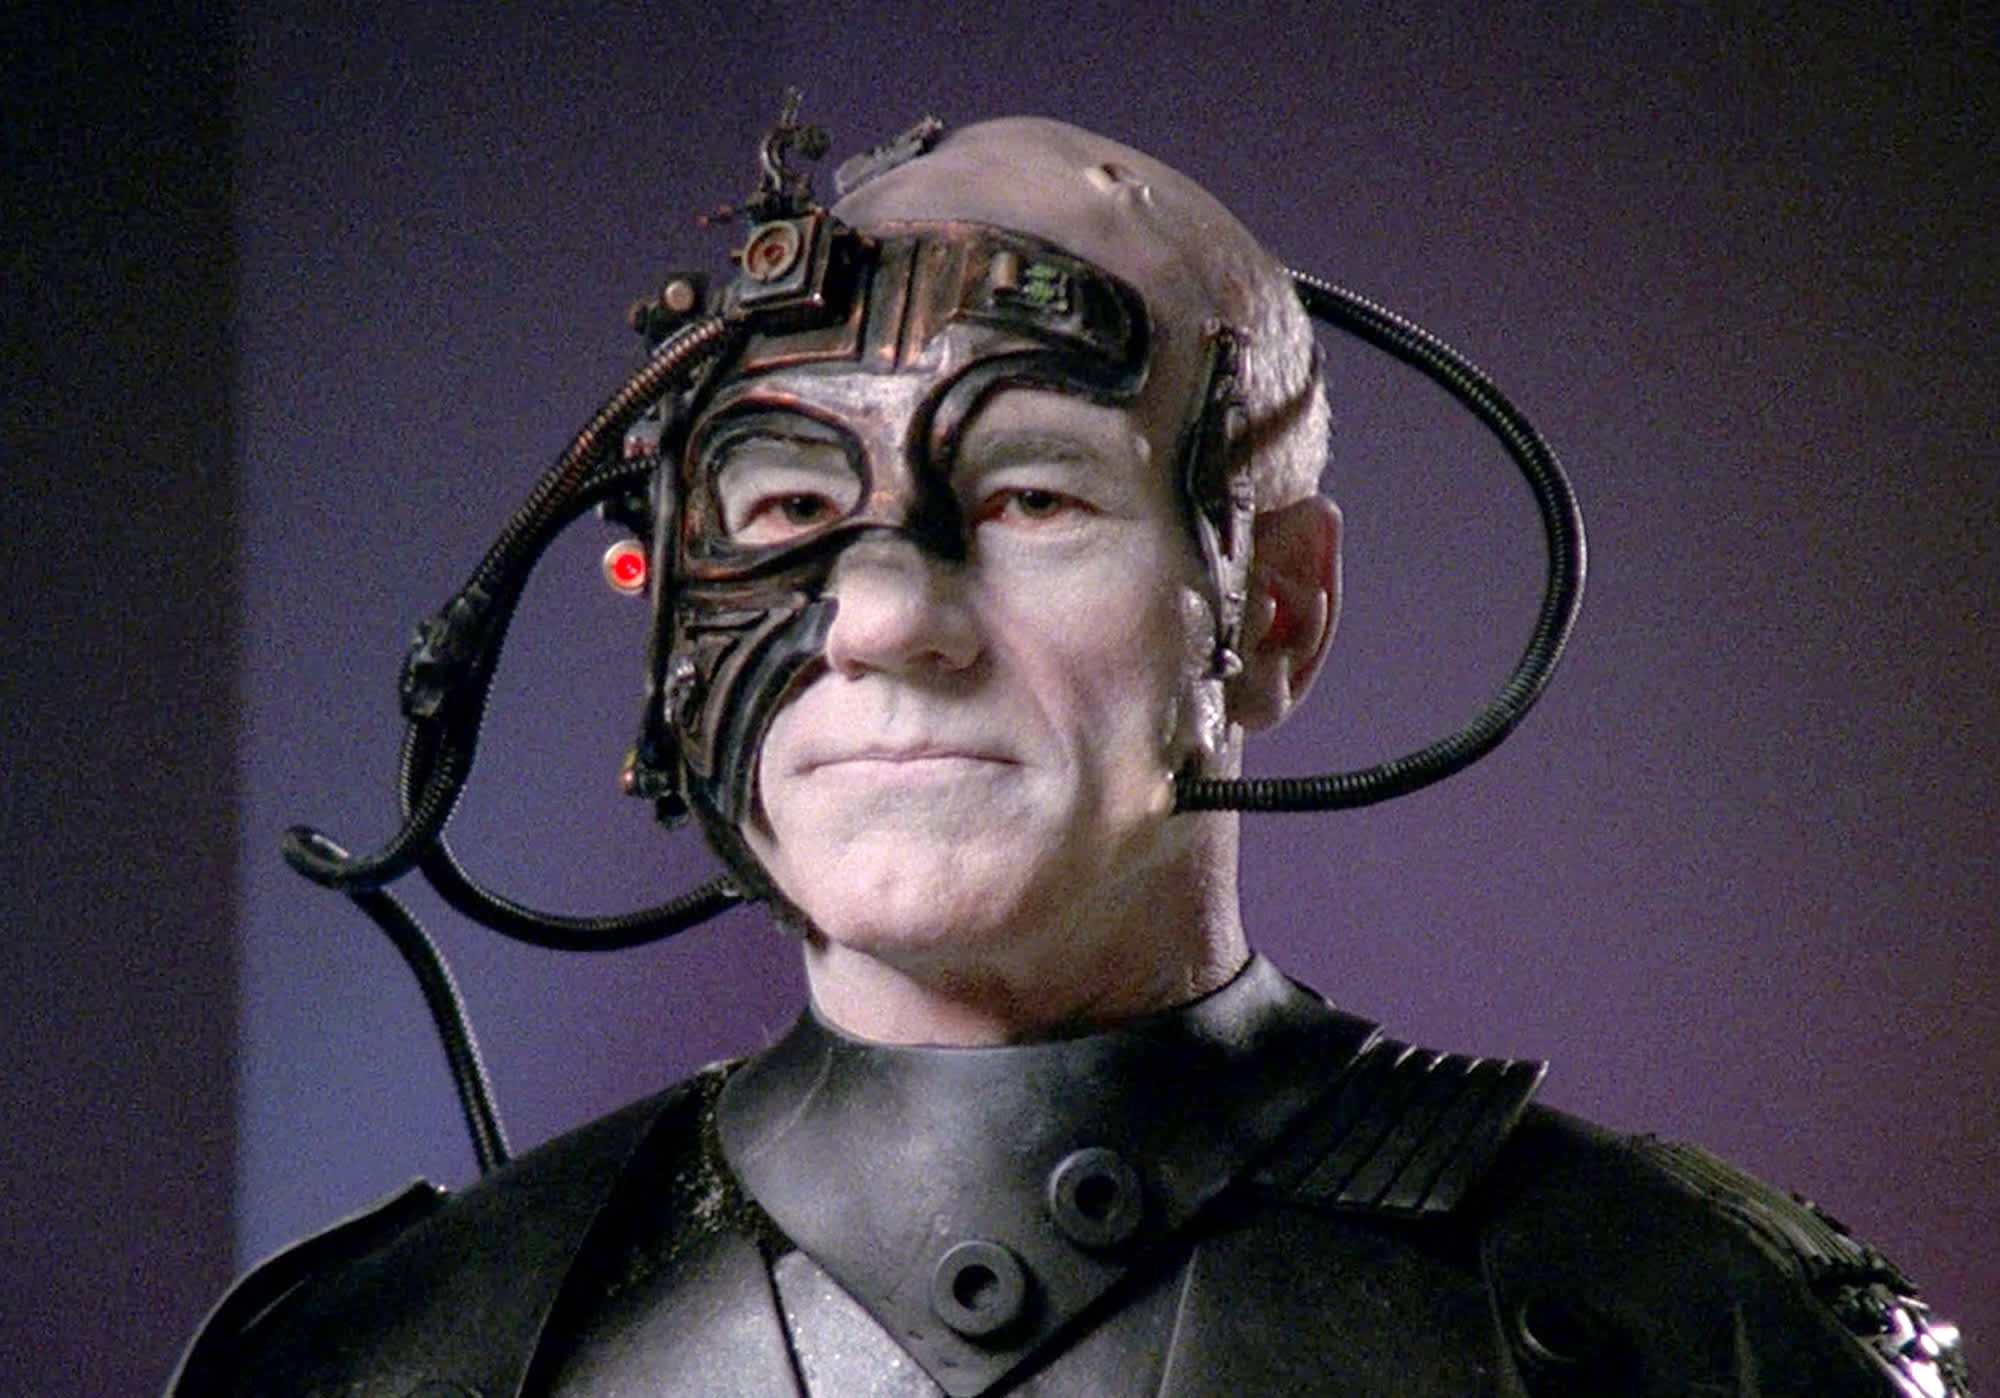 Patrick Stewart as Captain Jean-Luc Picard, partially transformed into Locutus of Borg in episode 'The Best of Both Worlds: Part II.' Originally broadcast on September 23, 1990.